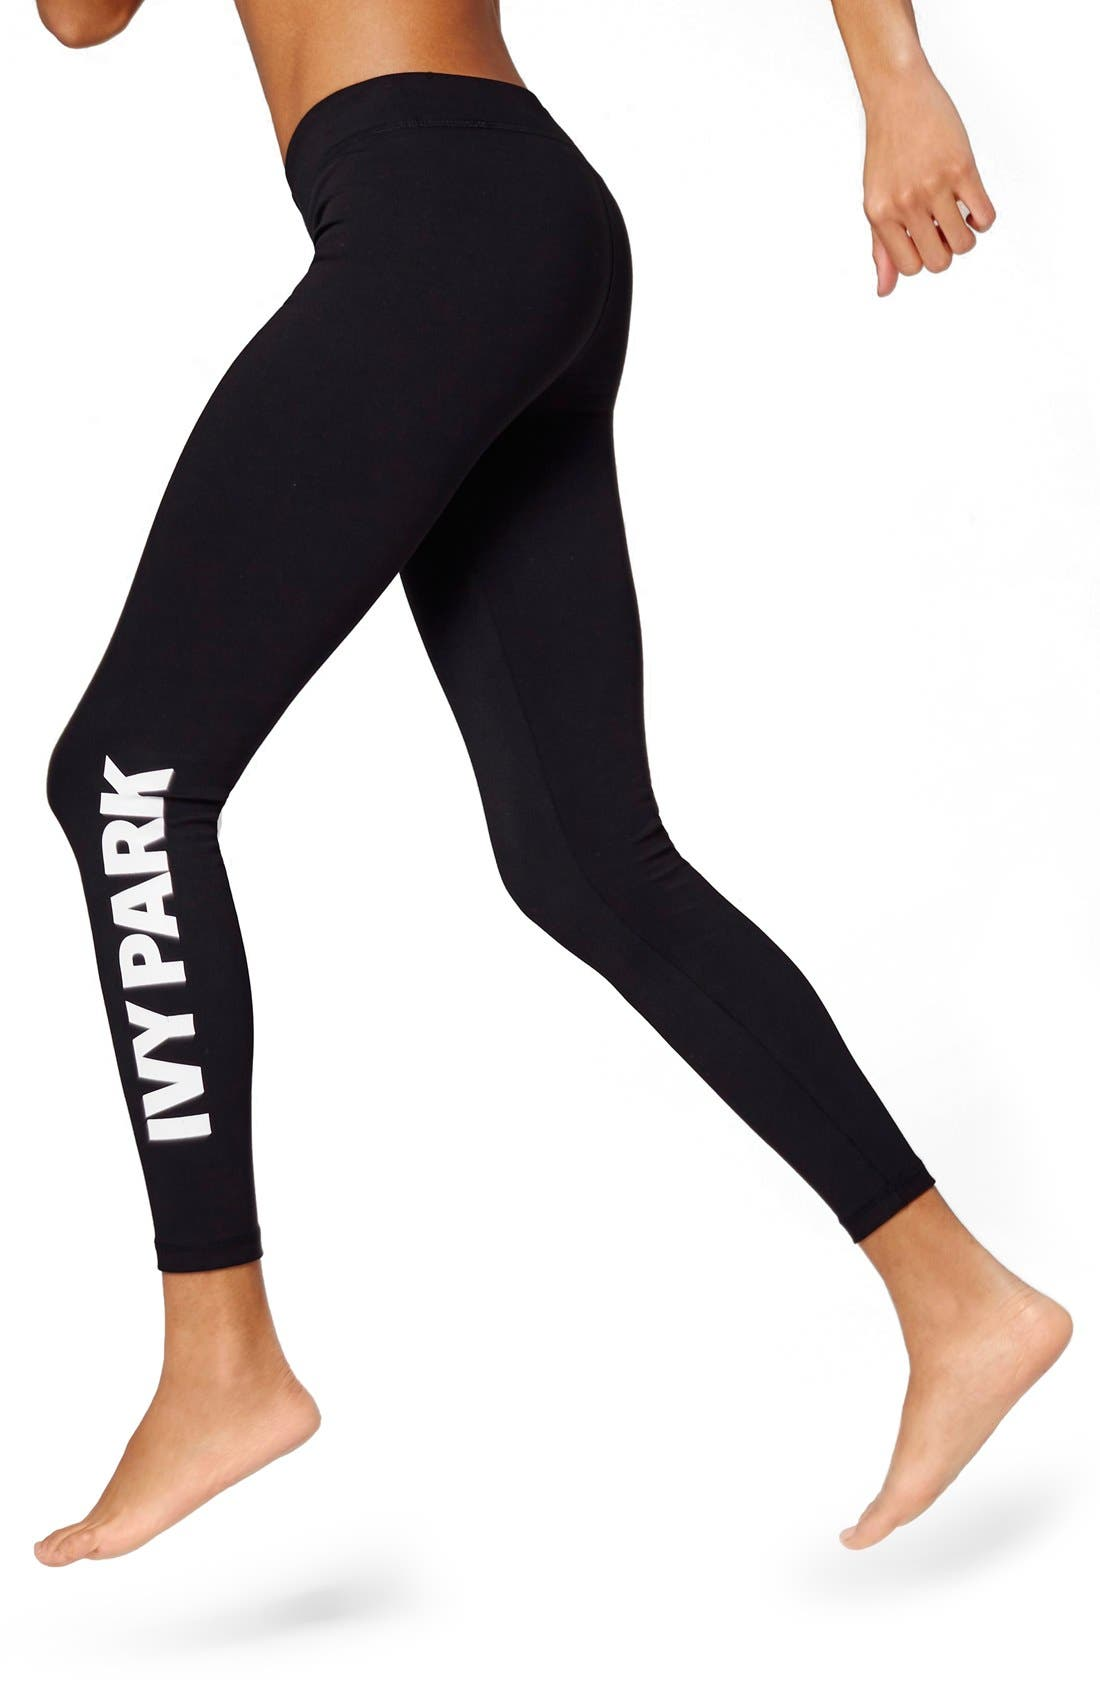 Alternate Image 1 Selected - IVY PARK® Logo Mid Rise Ankle Leggings